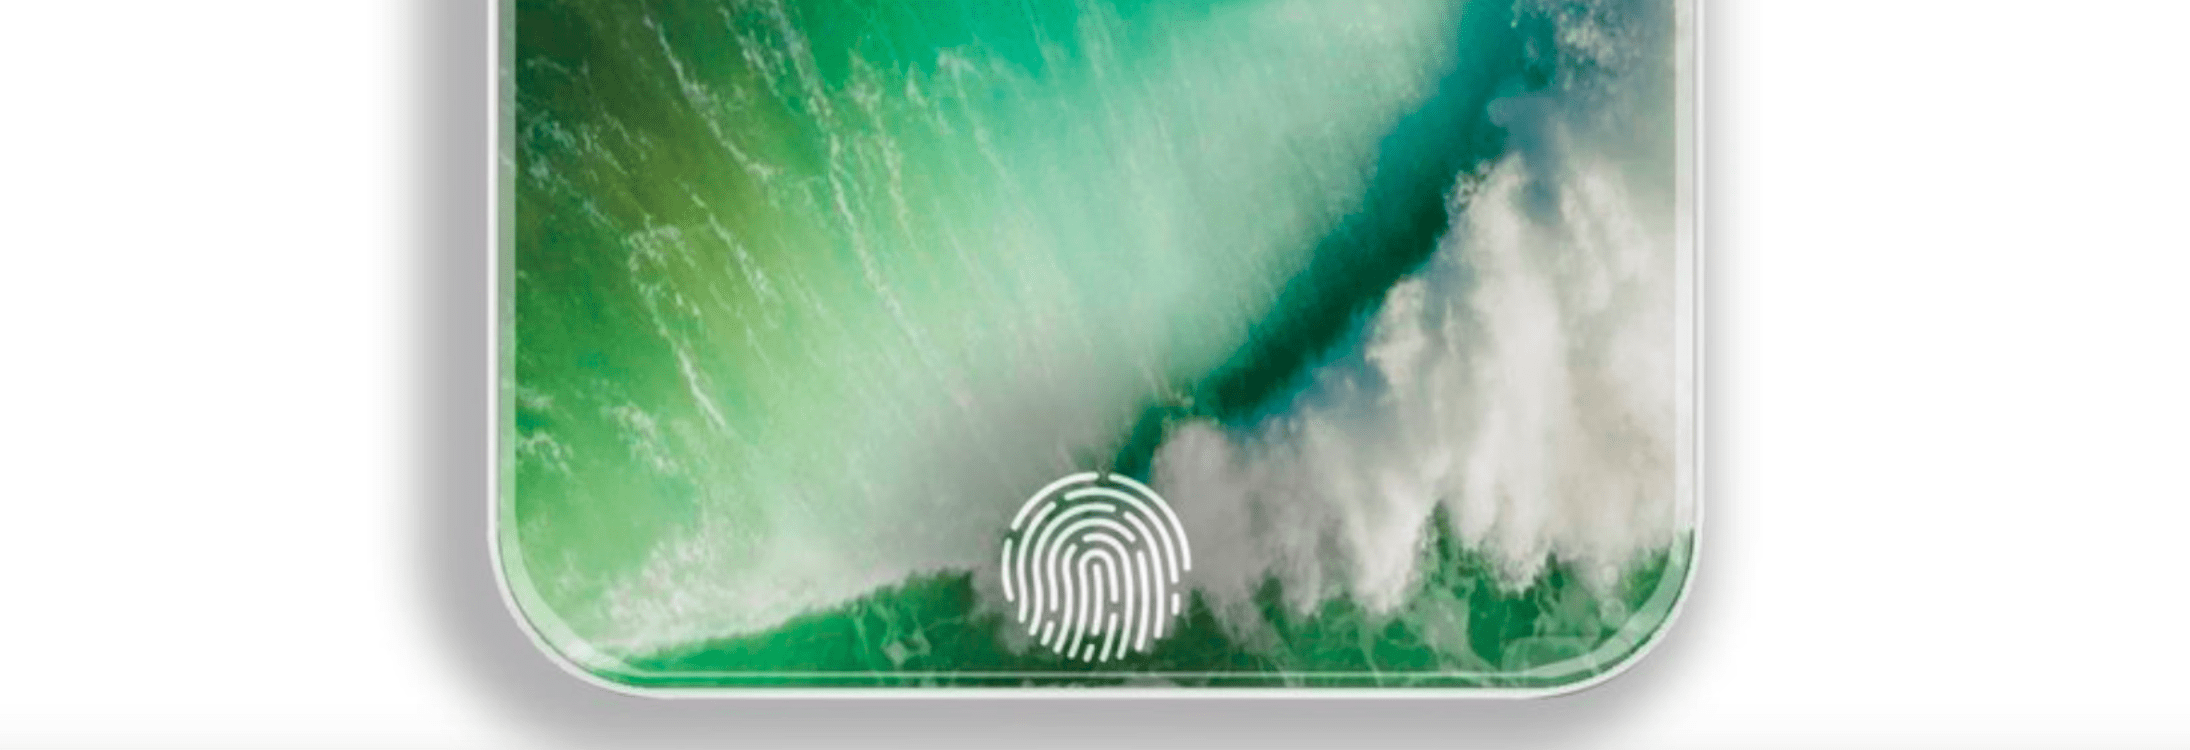 iphone-8-home-button-touch-id1_1.png